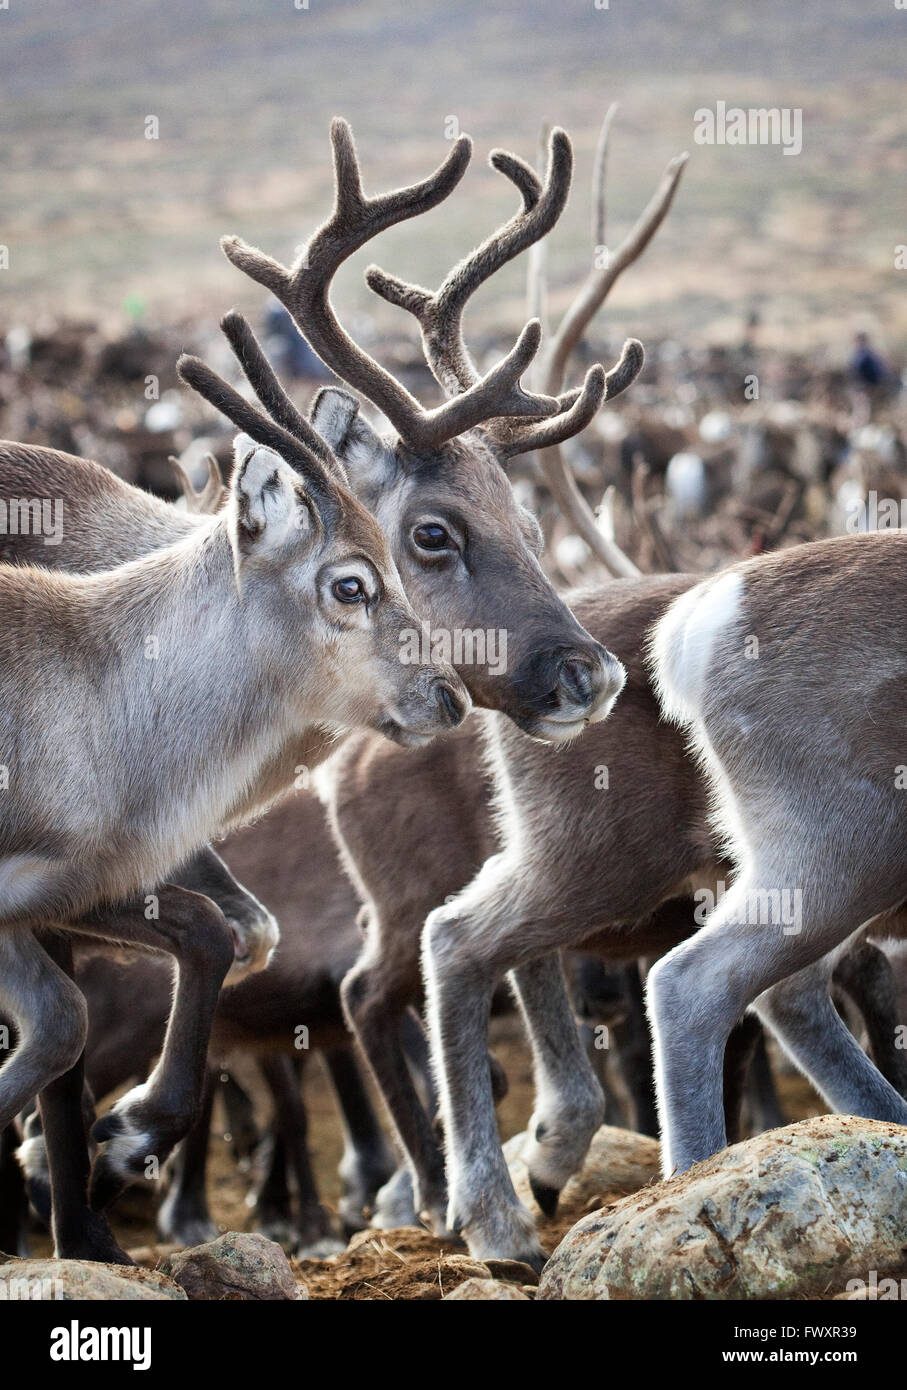 Sweden, Lapland, Levas, Close-up of herd of reindeer (Rangifer tarandus) Stock Photo